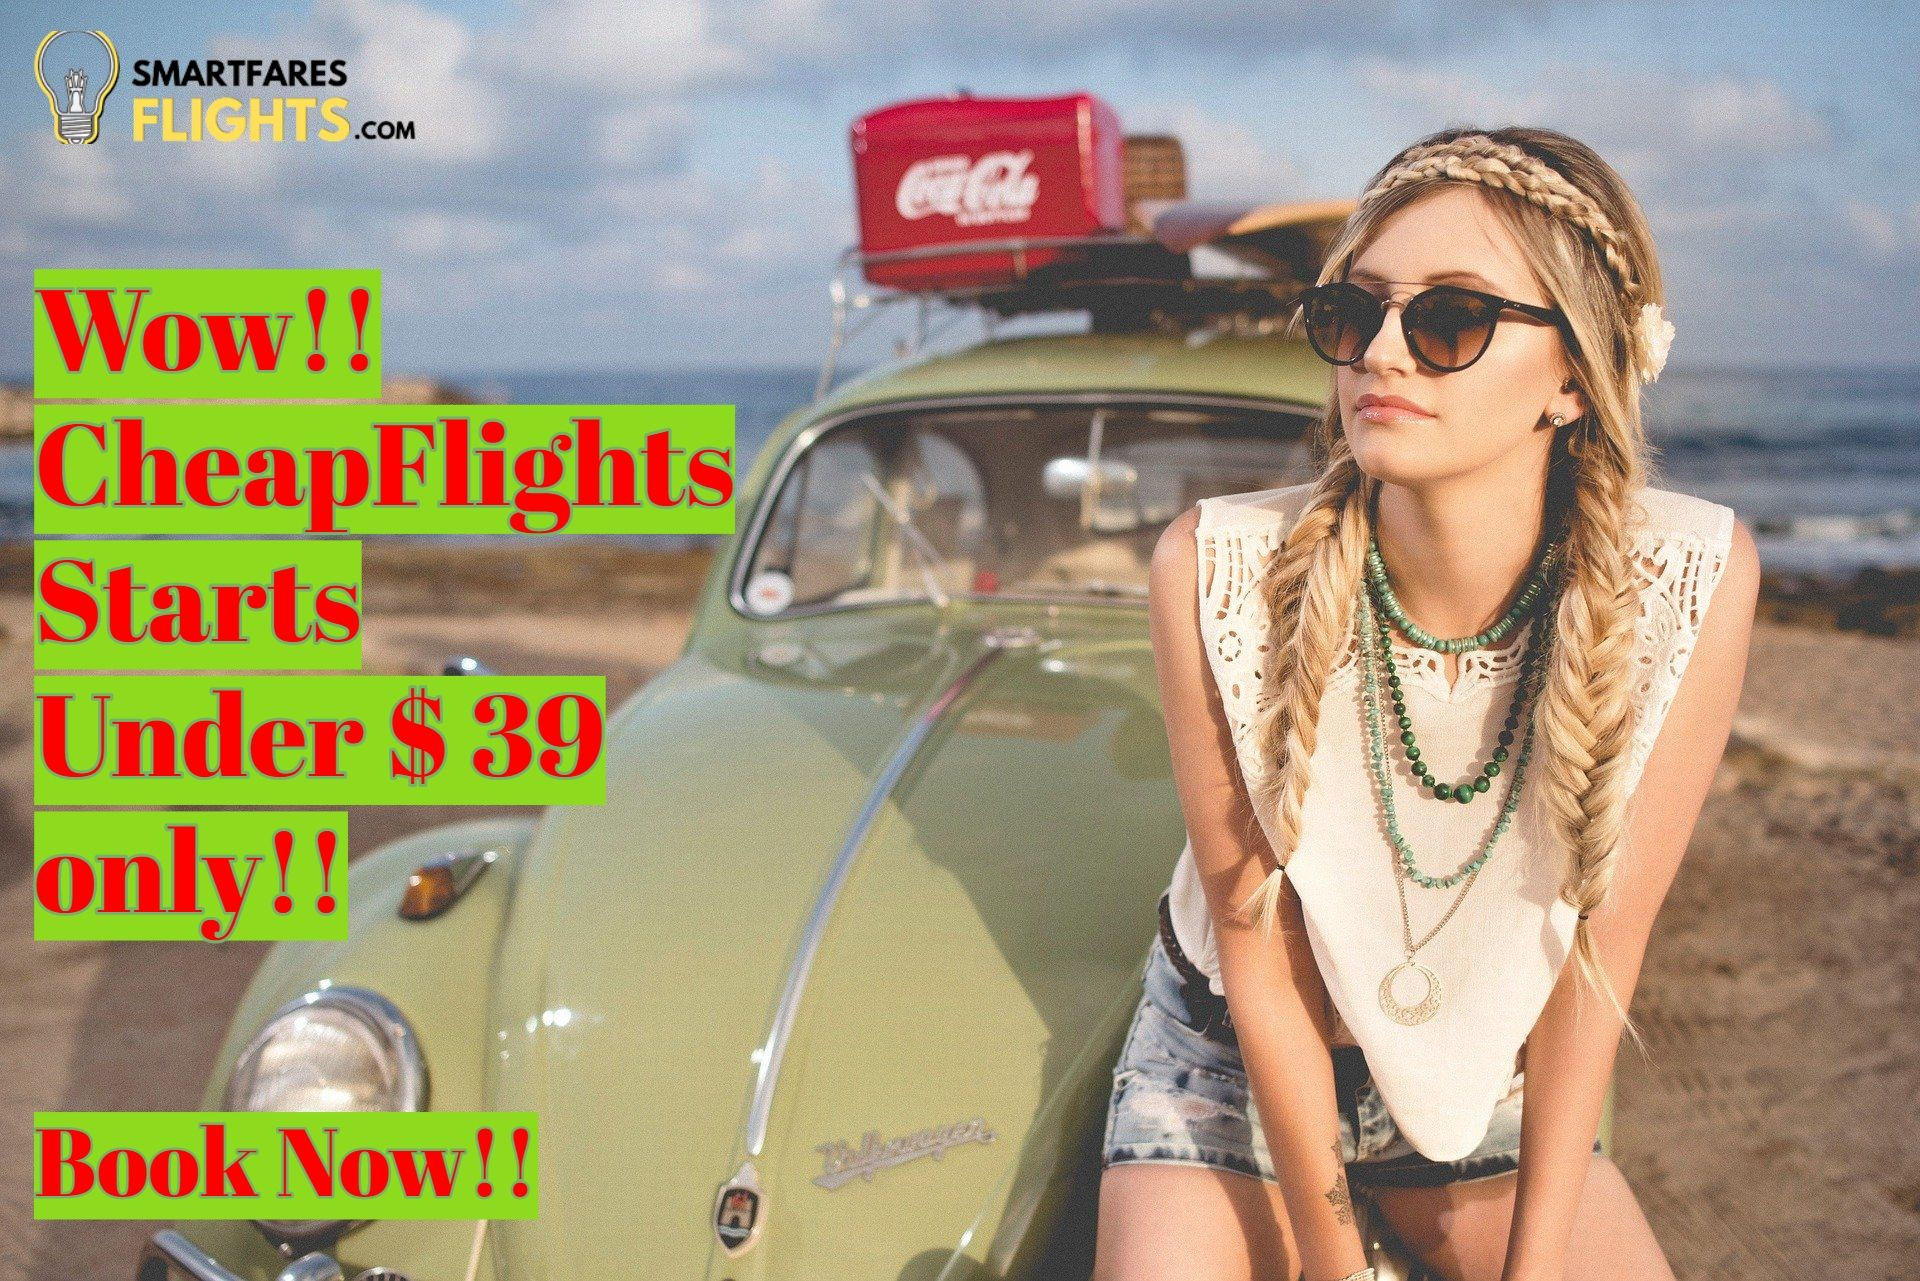 You can Book one of the most beautiful destination on very low fare with SmartFaresflights.com !! CheapFlights Under $ 39.  #Cheapflights #Lowerflightfare #Travel #Travelpinterest #Flights